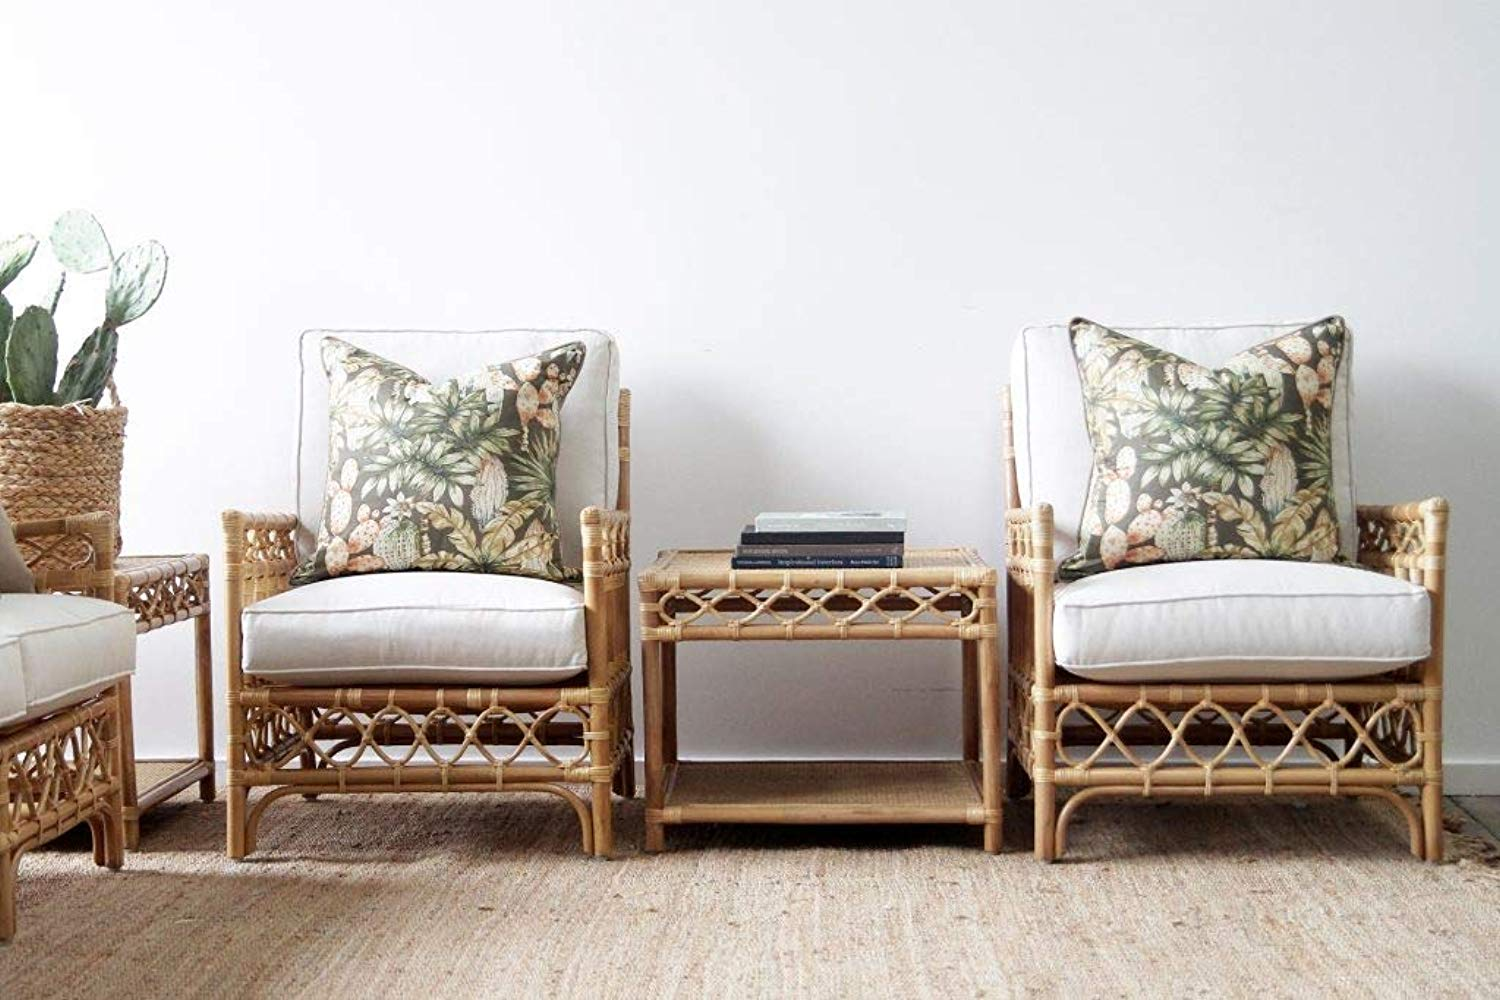 IRA Natural Armchair - IRA Furniture